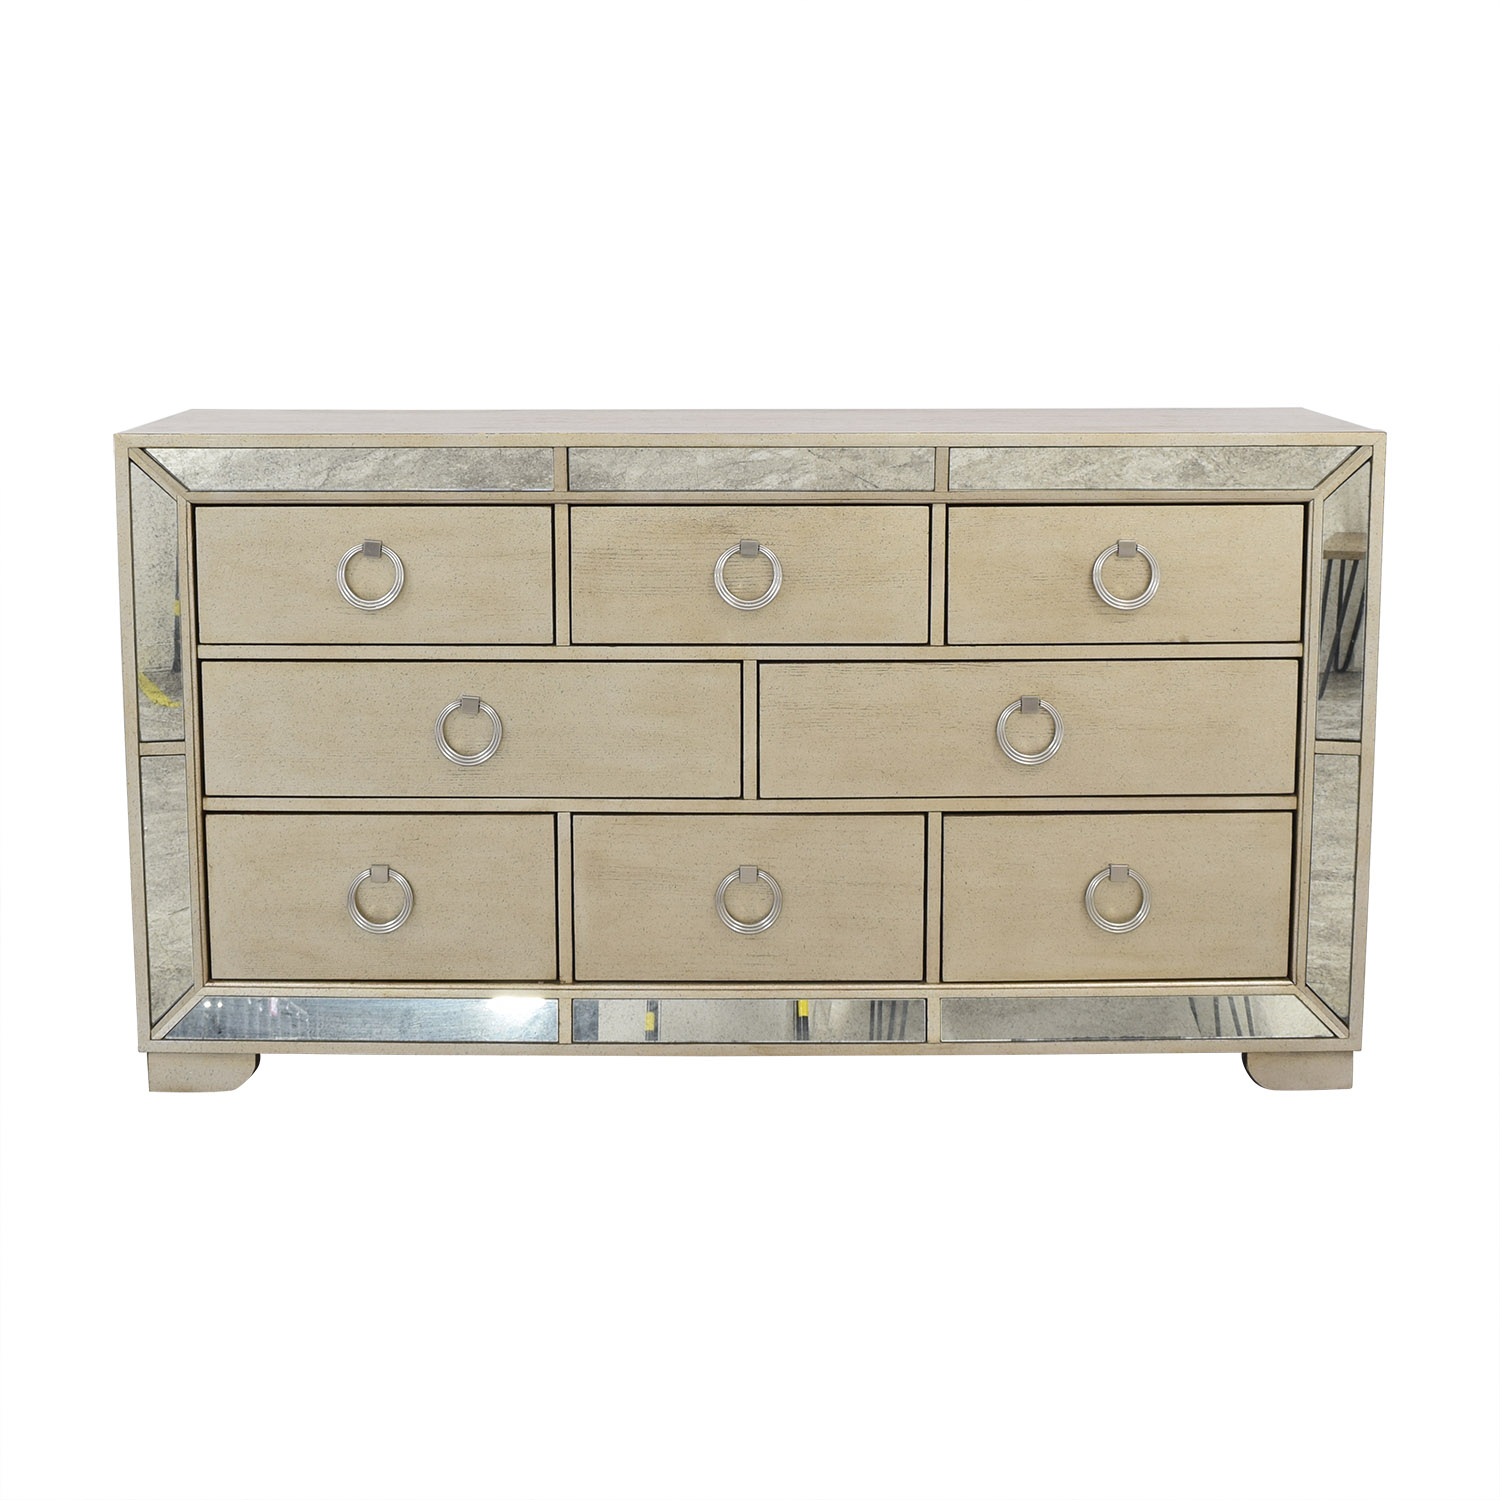 Macy's Ailey Eight Drawer Dresser / Dressers